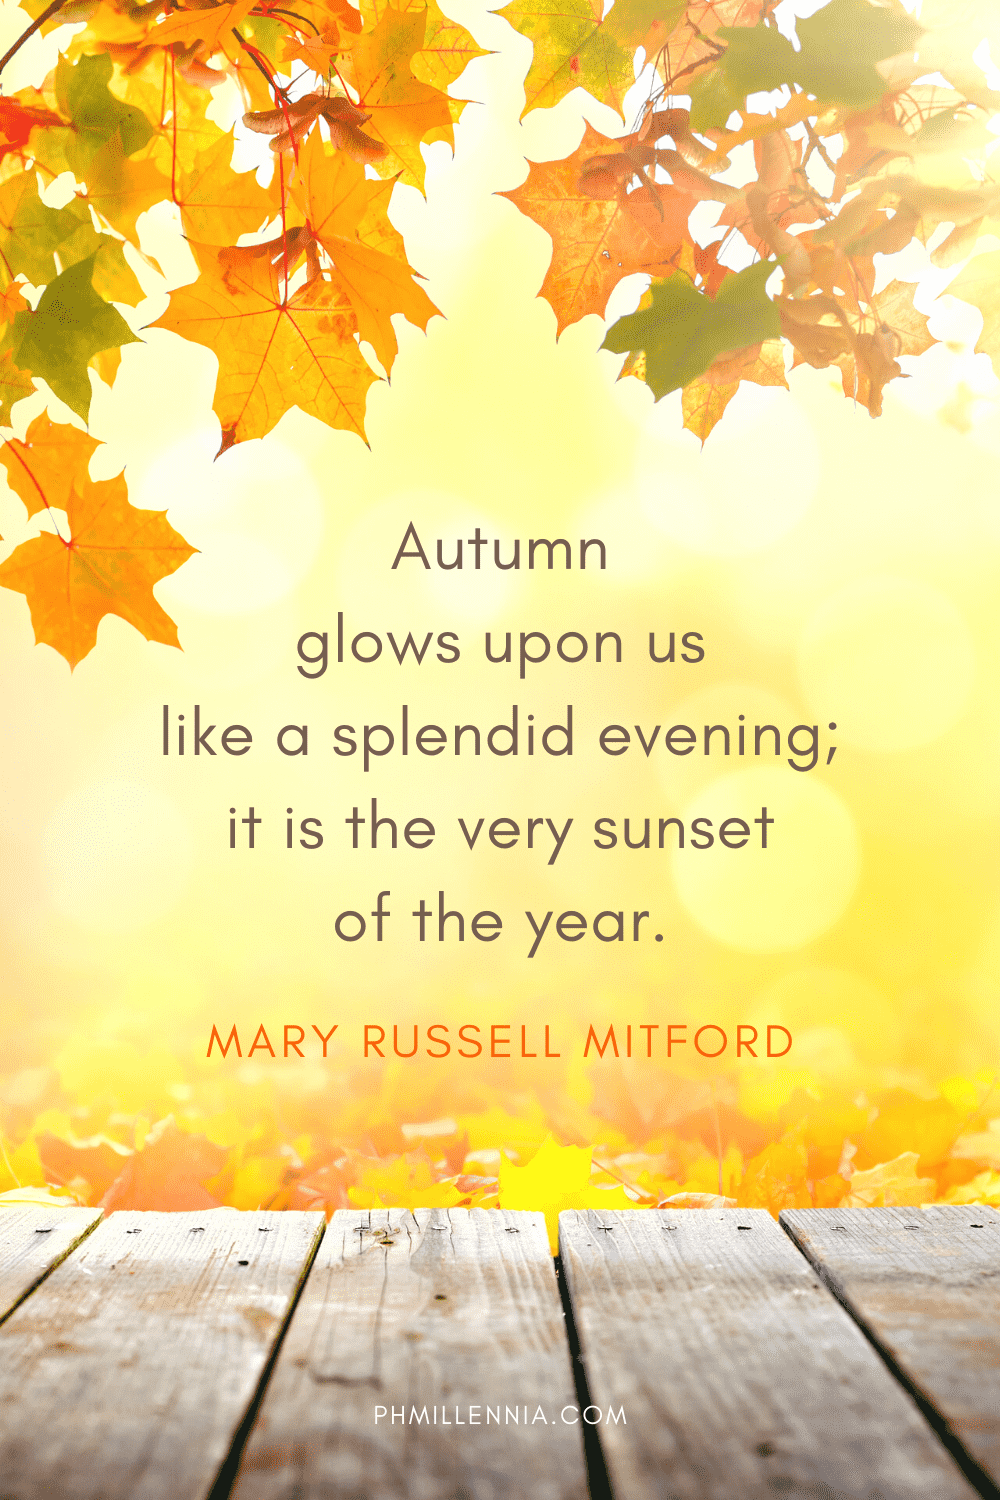 A graphic featuring an autumn quote/fall saying over an image framed by autumn/fall leaves